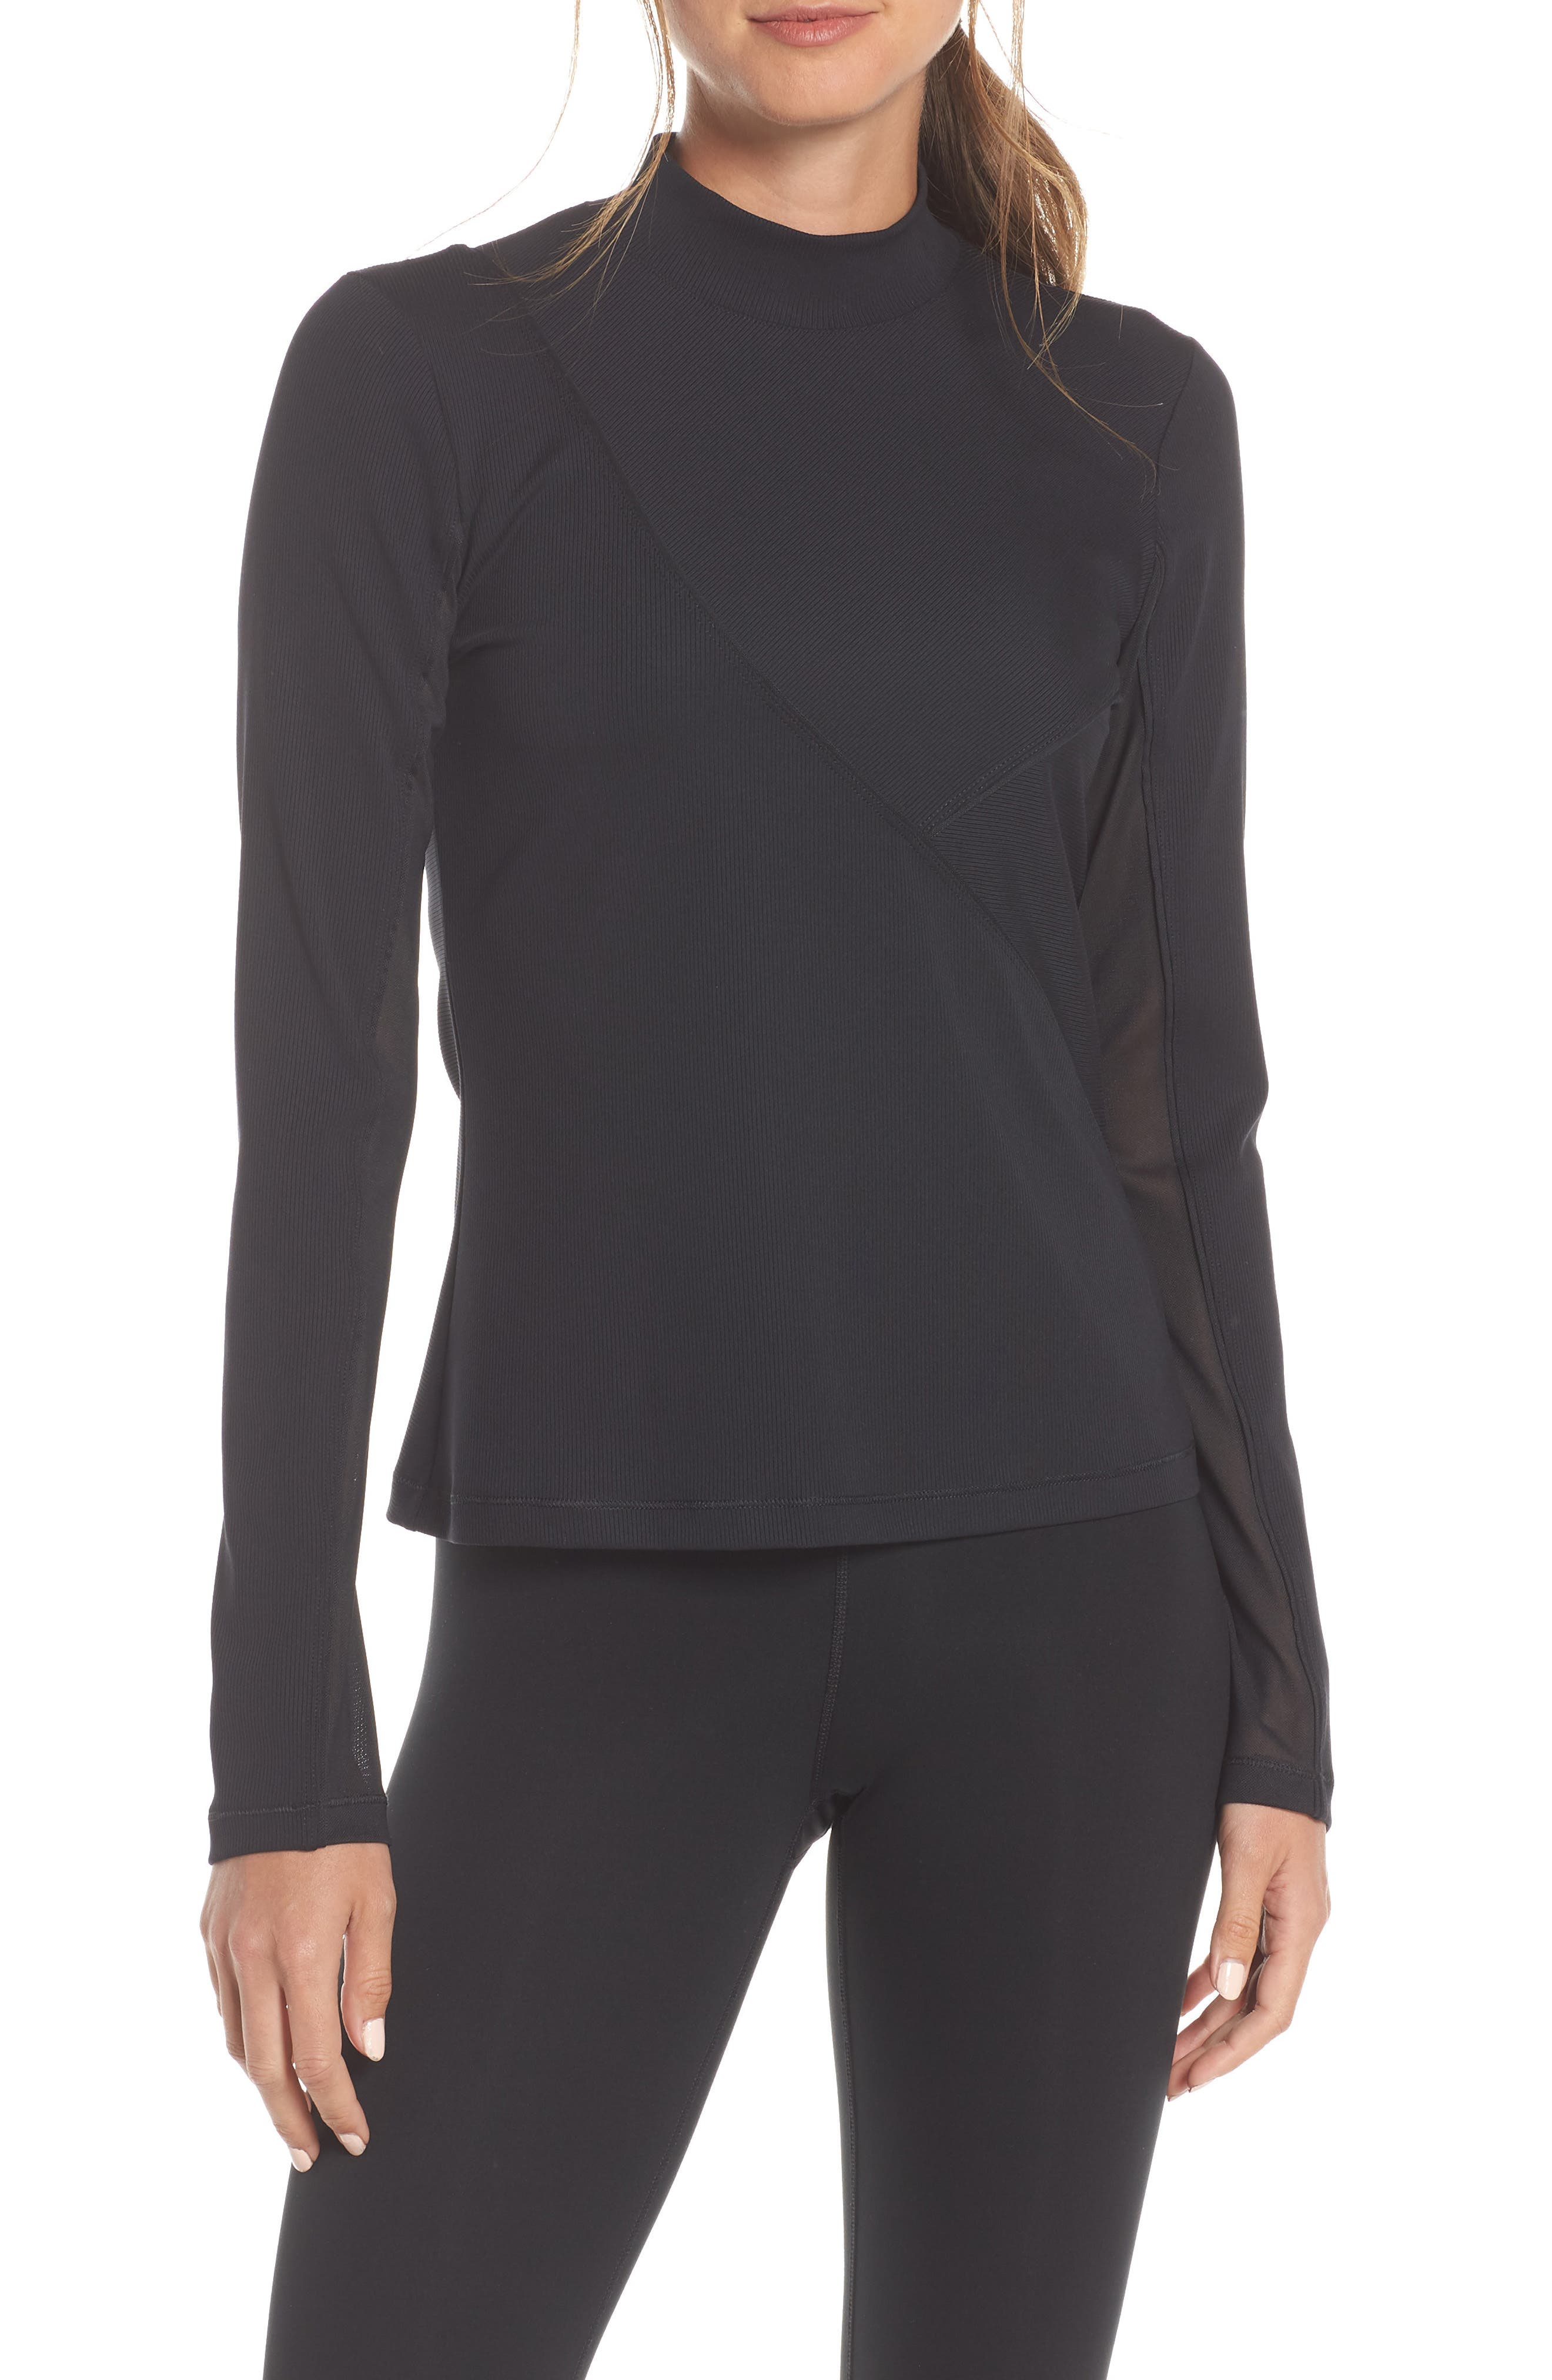 The Nike Pro HyperCool Women's Long Sleeve Ribbed Top, Main, color, BLACK/ CLEAR